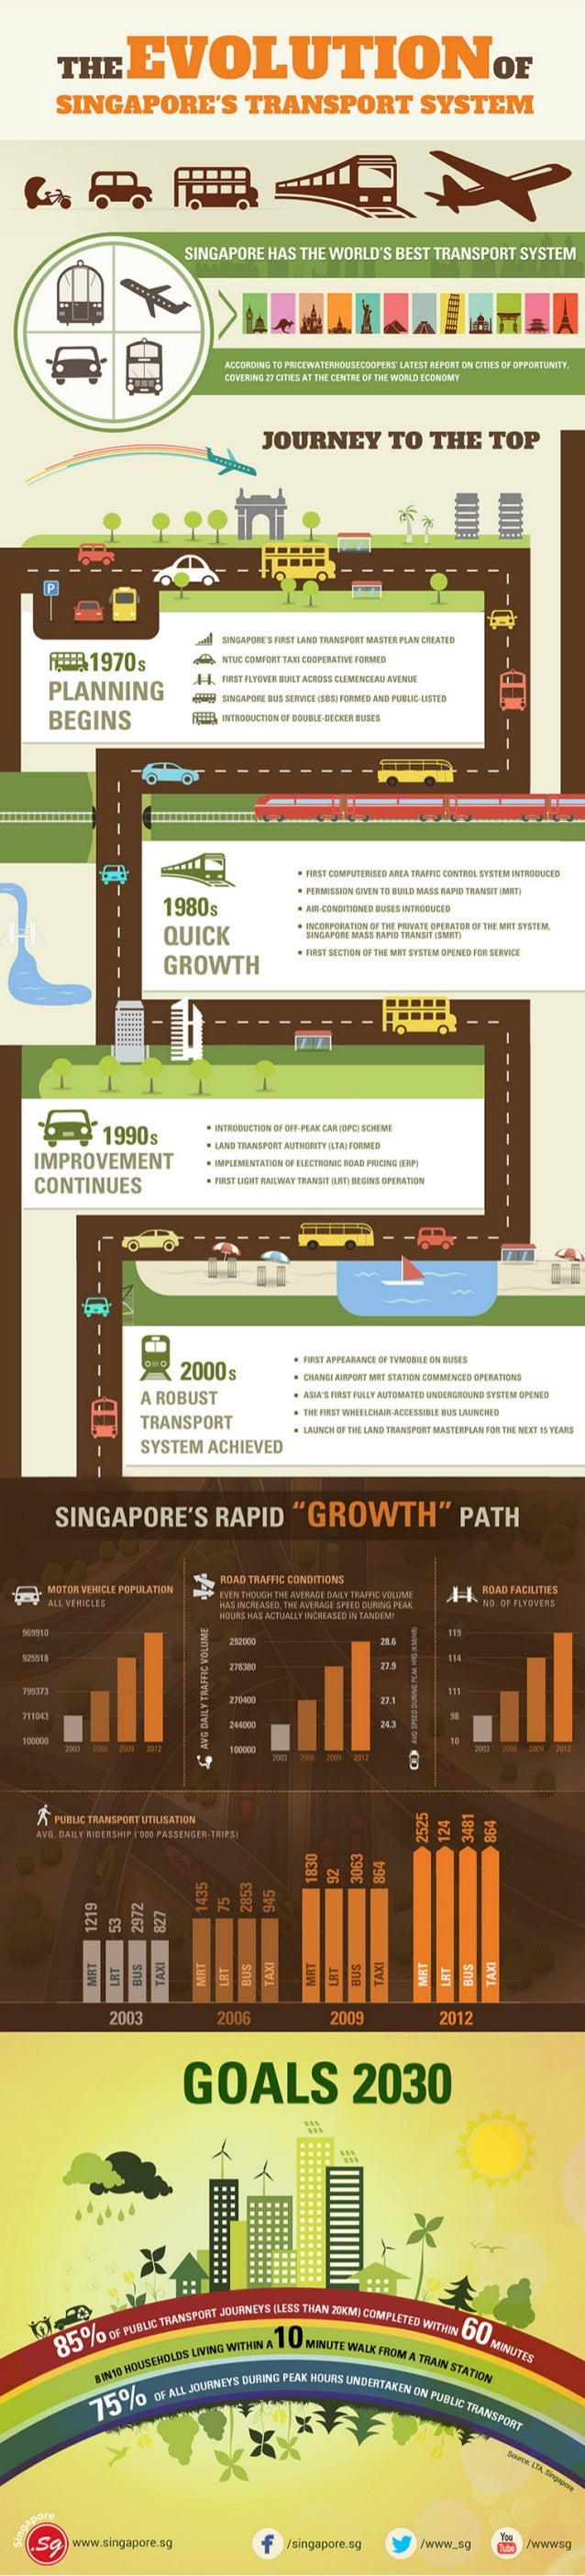 transport system in singapore 11 singapore is the first city in the world to make use of electronic road pricing  (erp) system for managing road congestion in recent years.